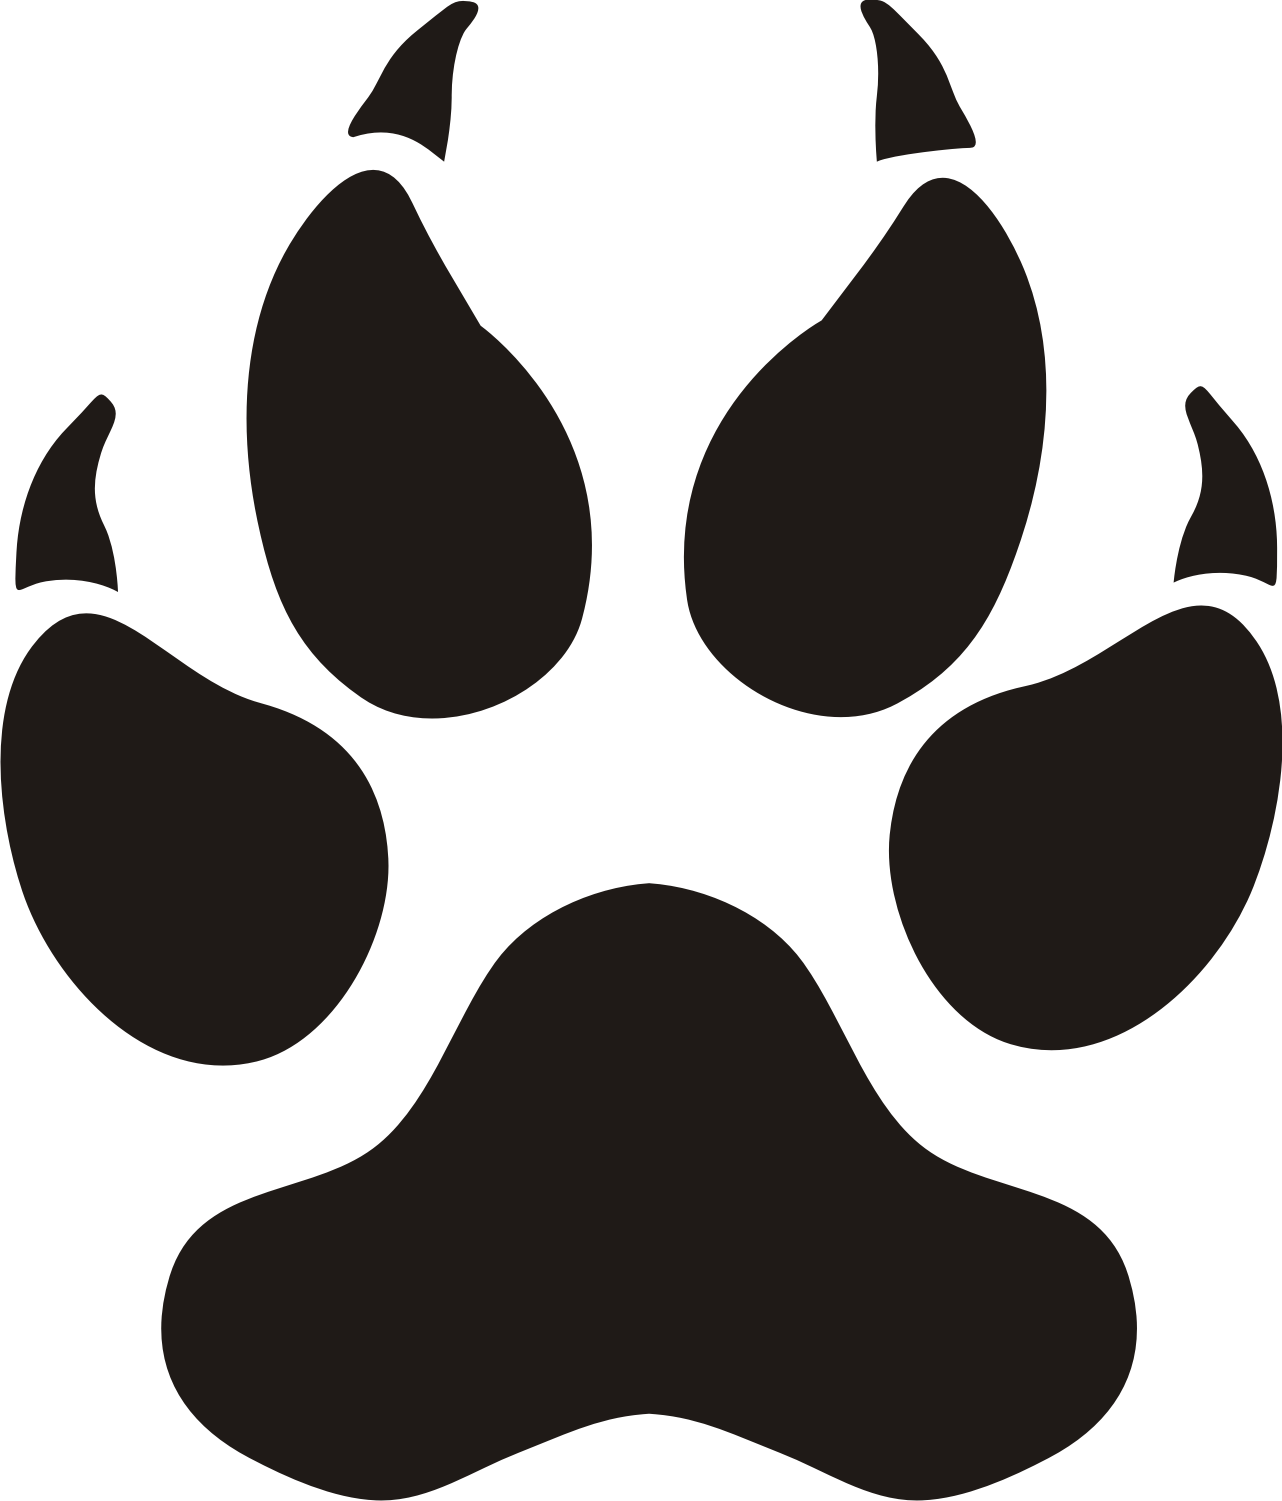 Tiger paw with claws clipart